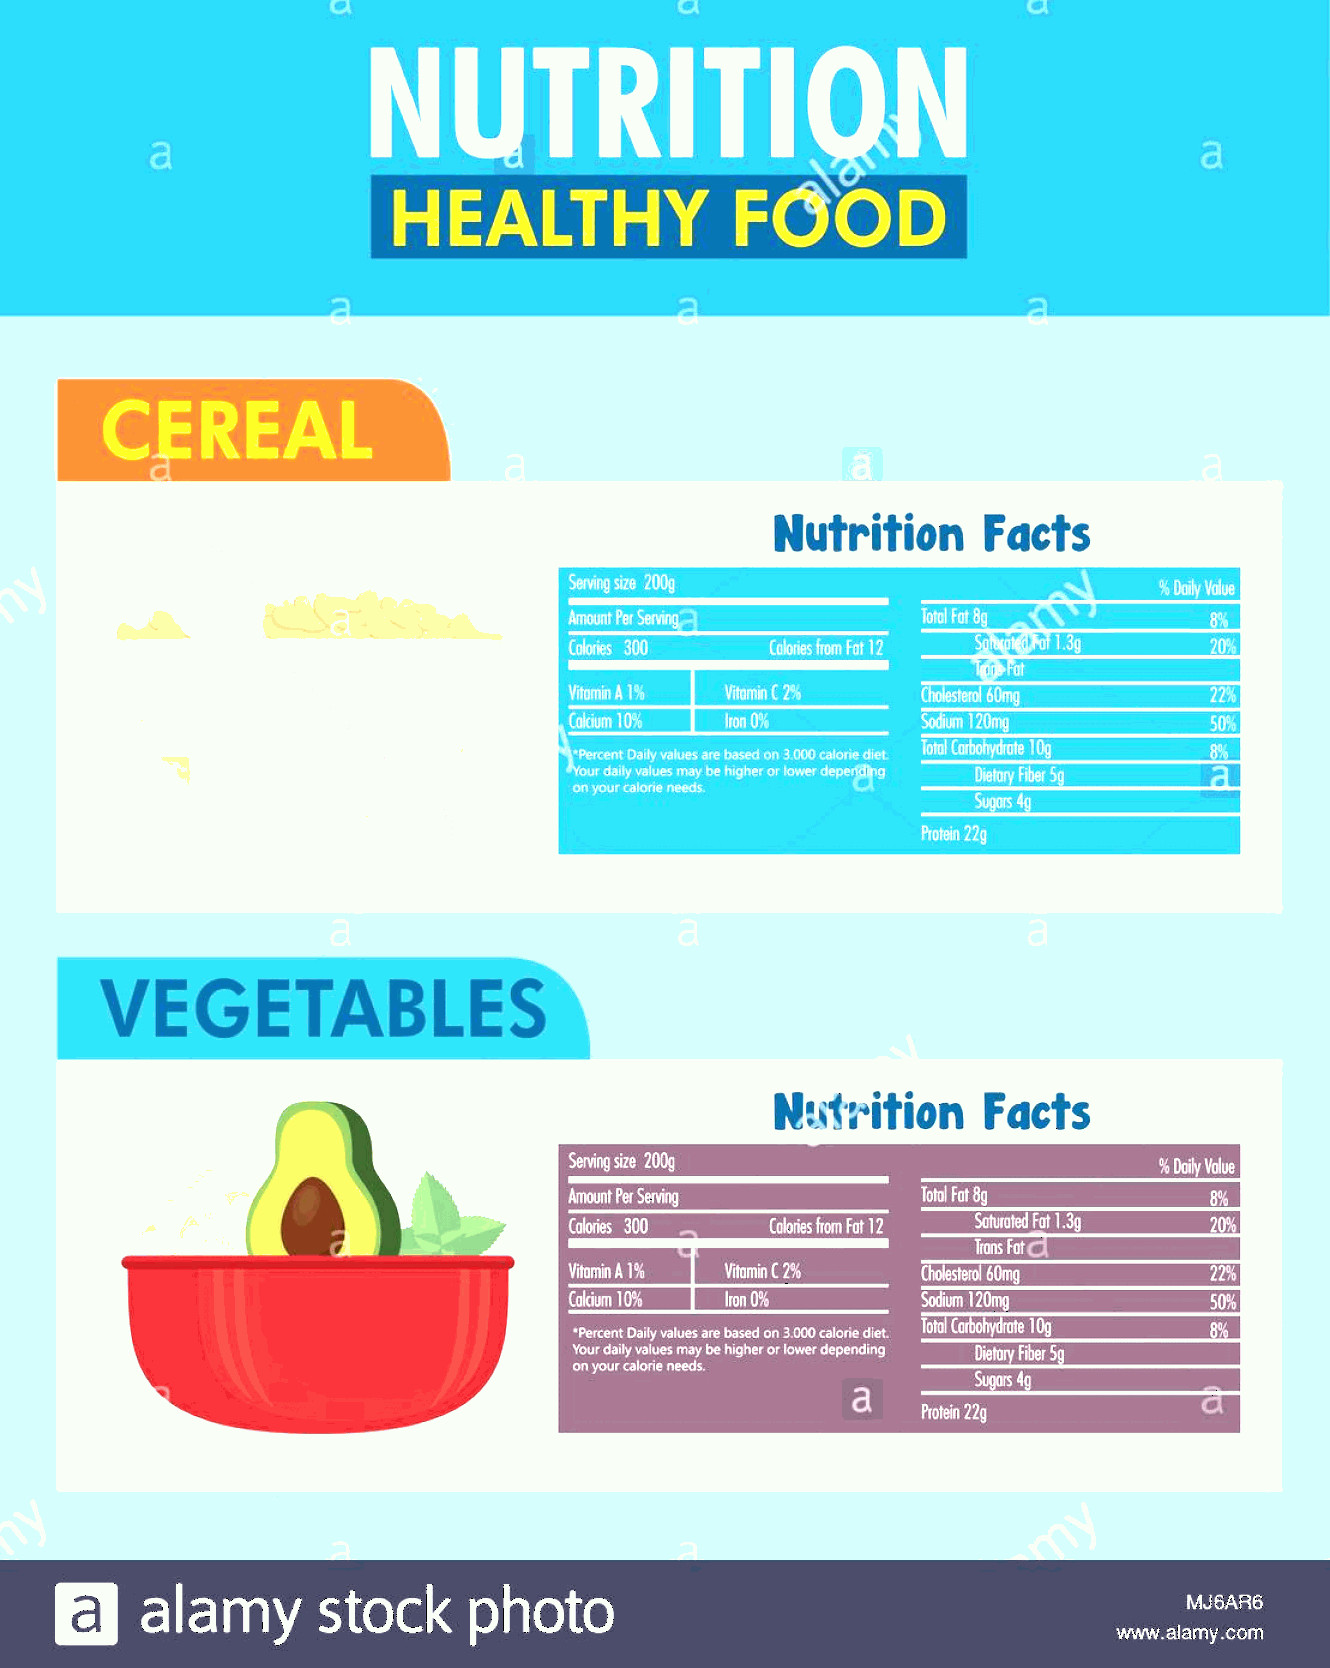 Vector Cereal Nutrition: Cereal And Vegetables Nutrition Facts Image